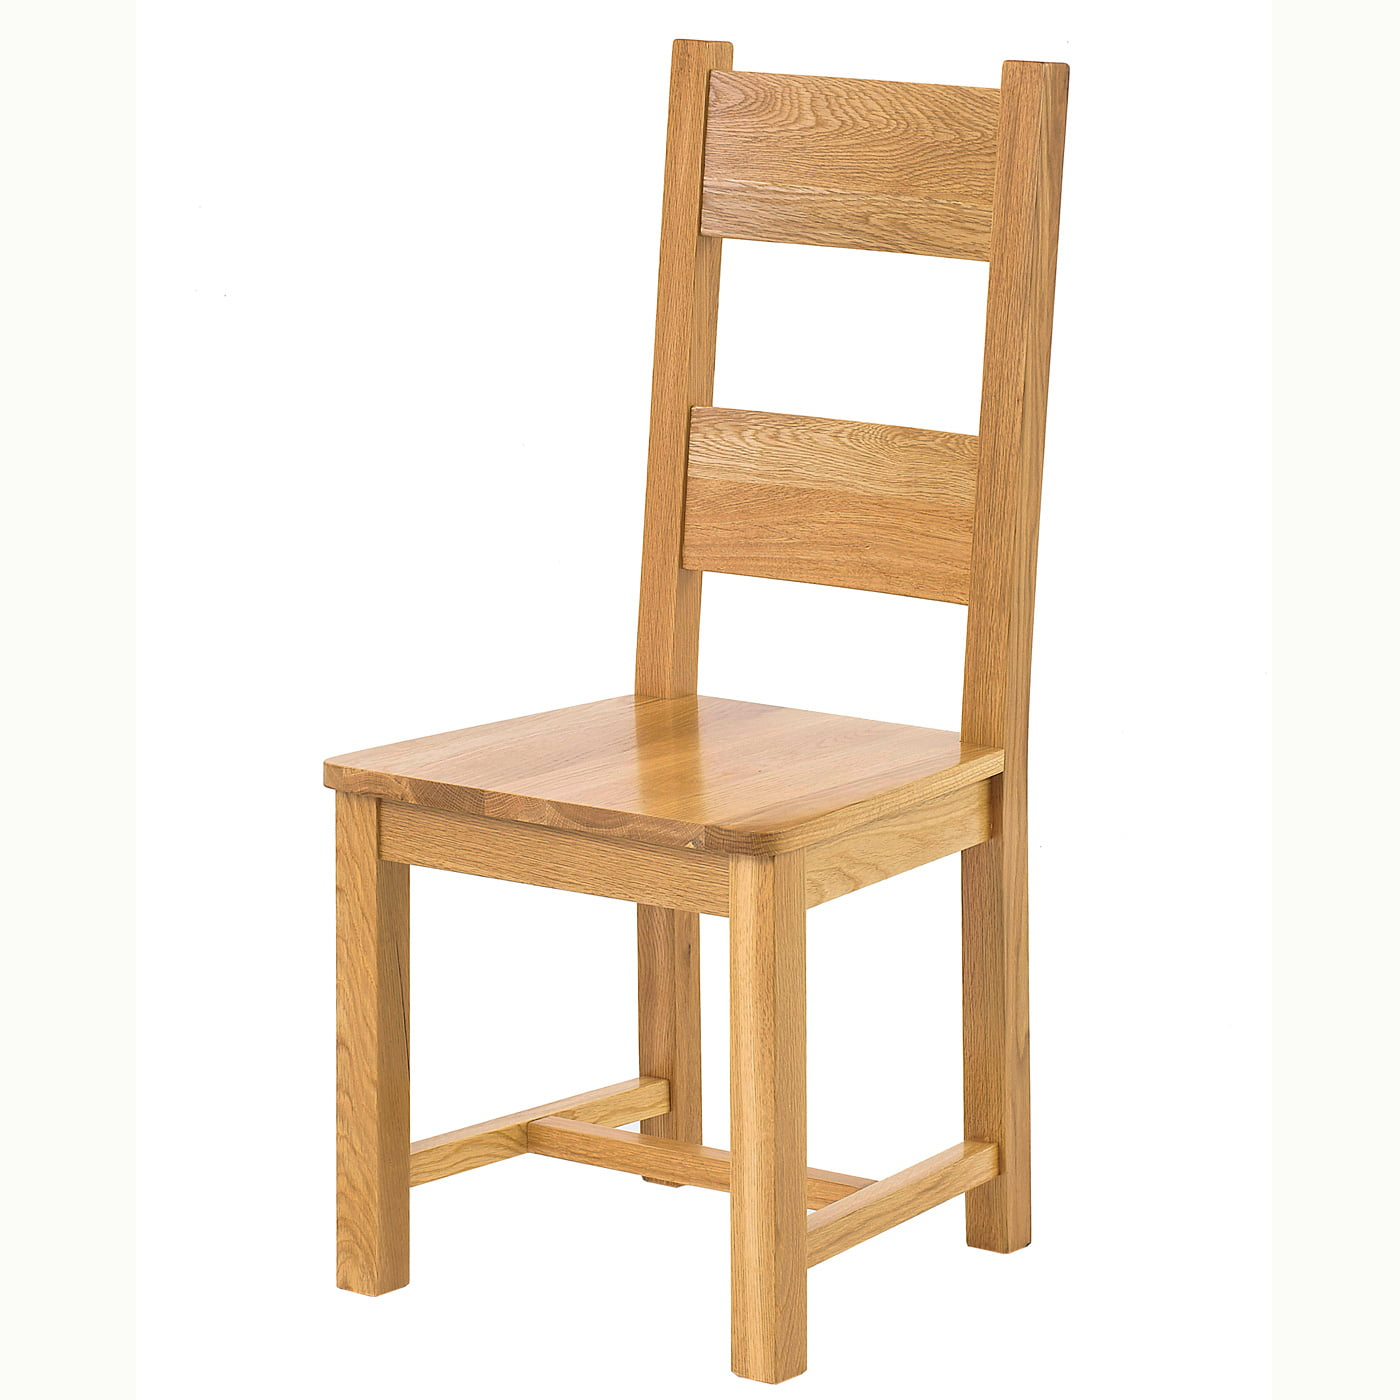 Lincoln Solid Oak Ladder Back Chair Solid Seat RedTree  : lincoln solid seat chair 1 from redtreefurniture.ie size 1400 x 1400 jpeg 299kB